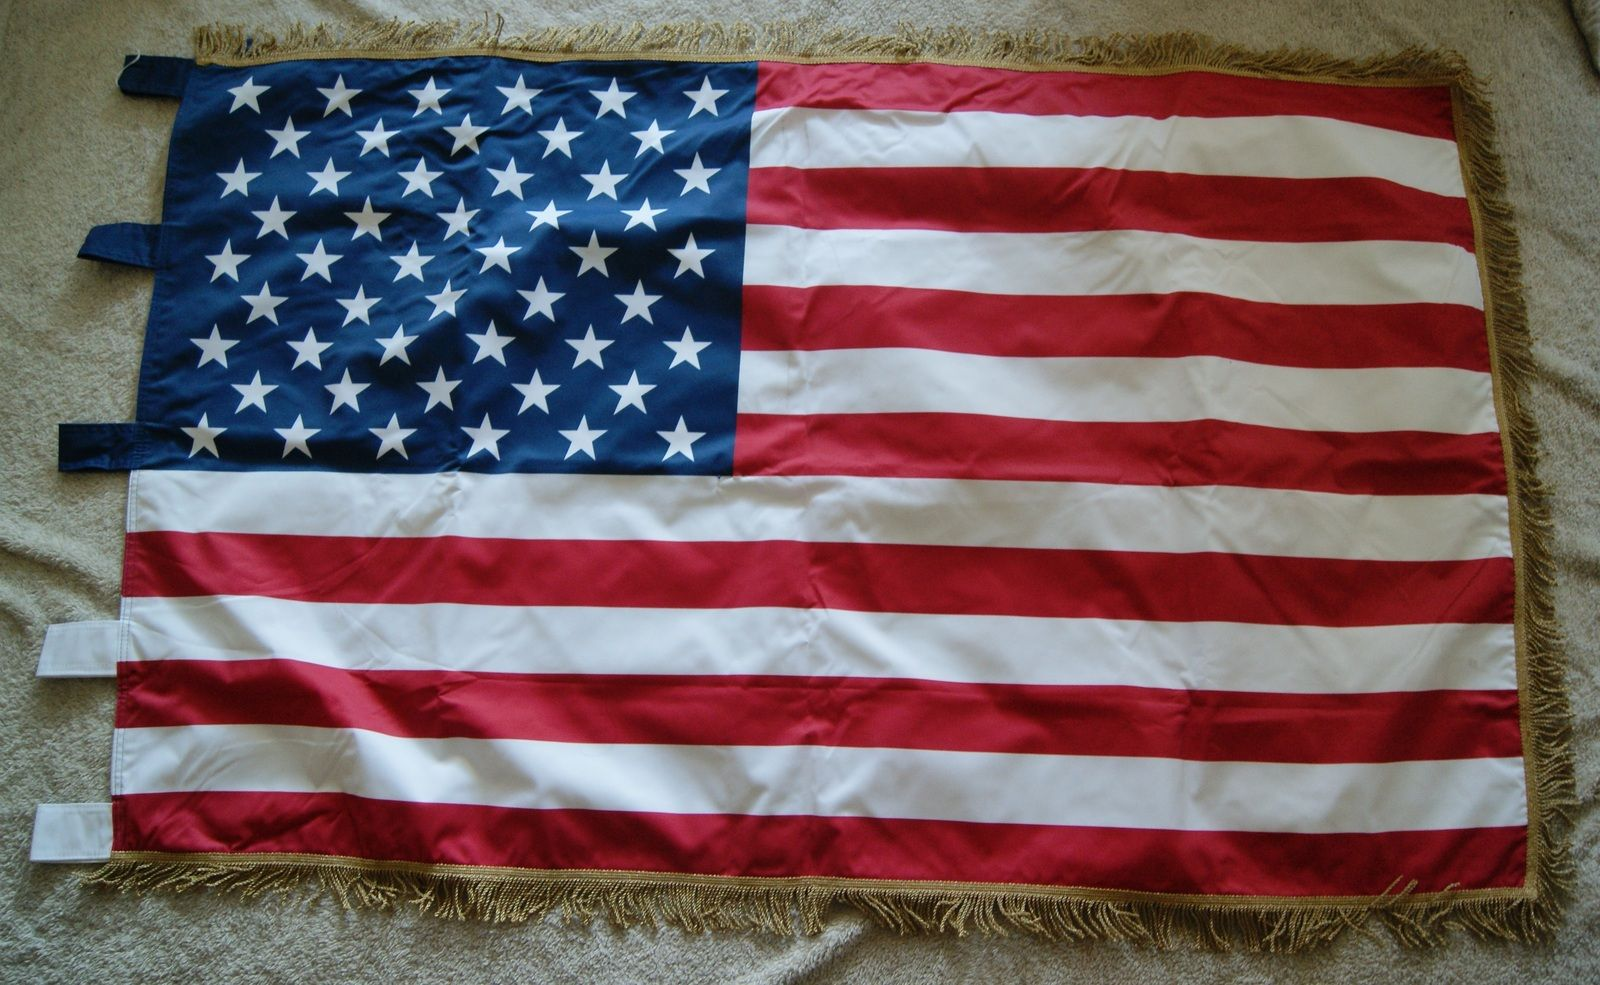 From The Movie Point Break Two Screen Used Flags U S Flag F B I United States Flag Star Stripes With Fringe Fl Point Break Movies Point Broken Screen